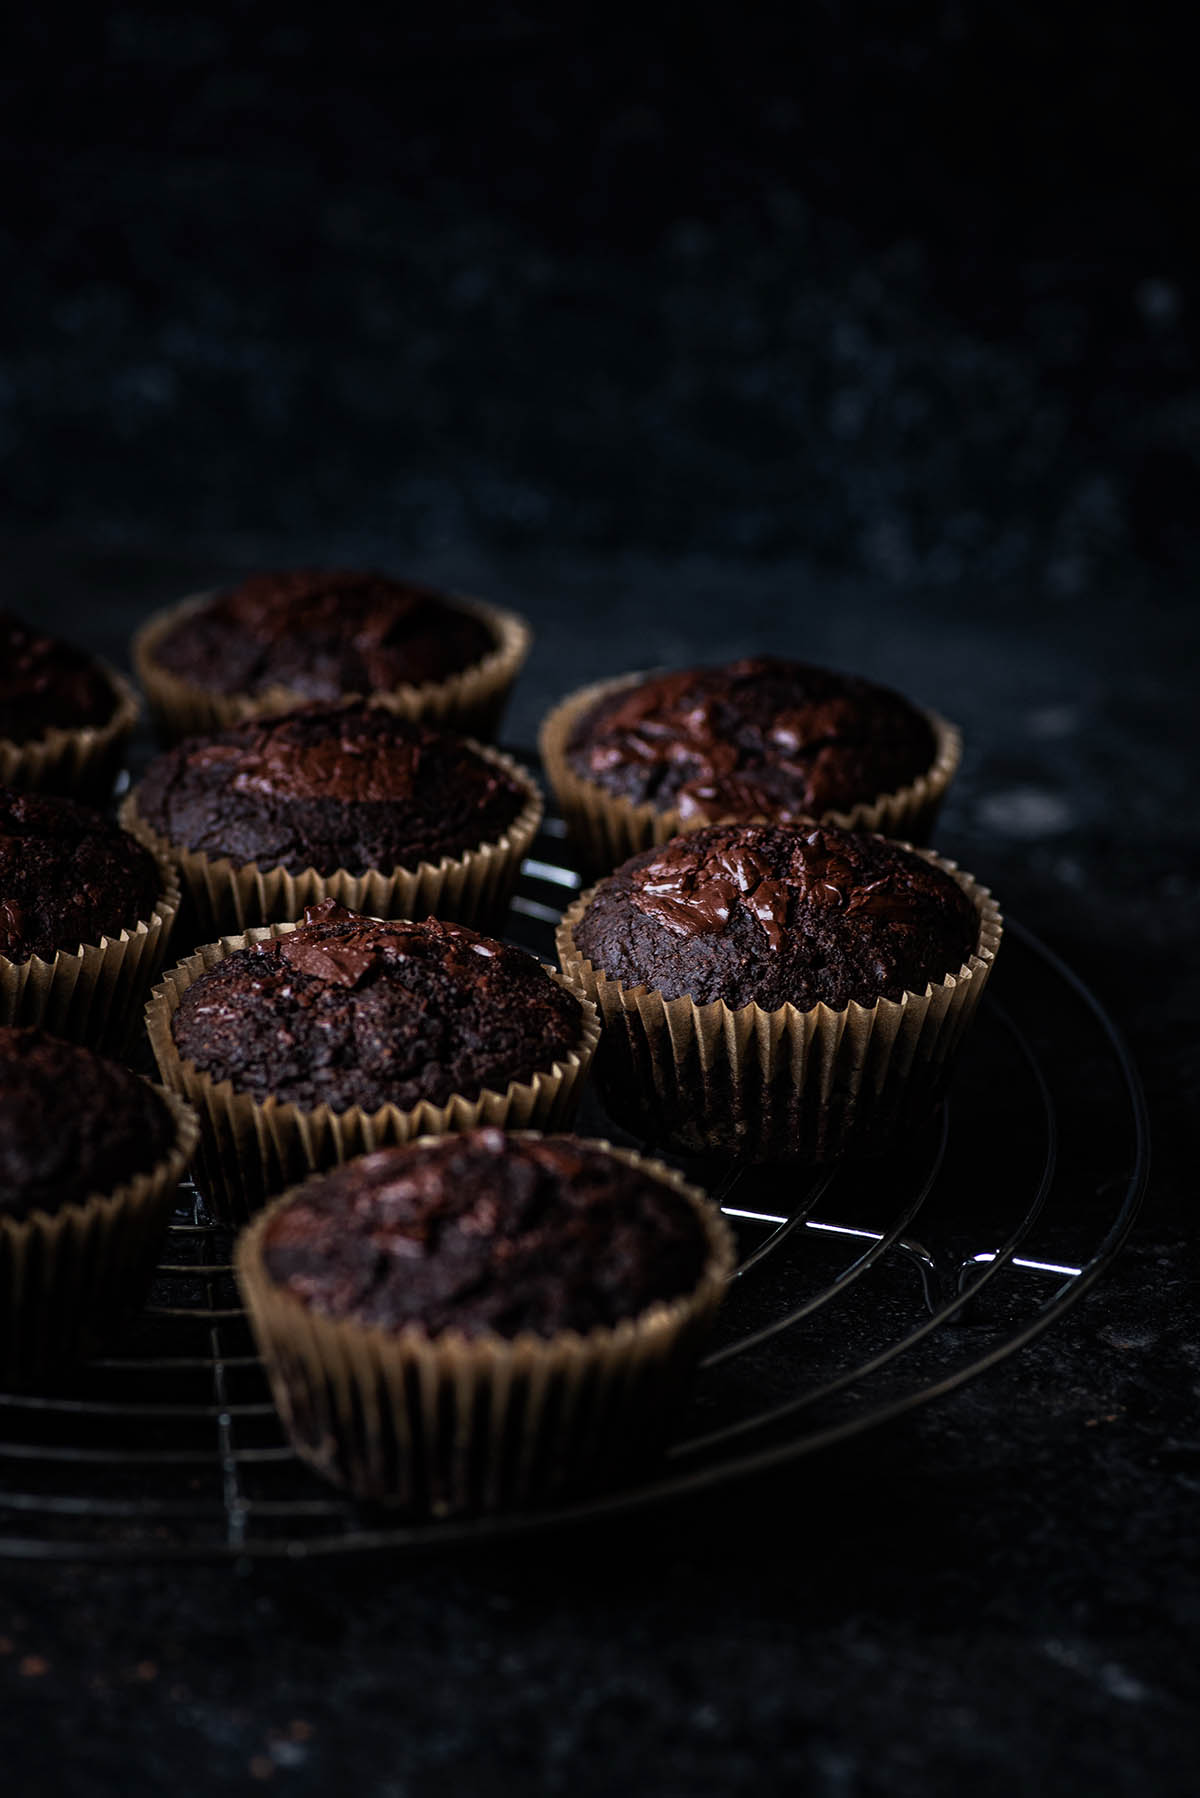 Muffins on a metal cooling rack.